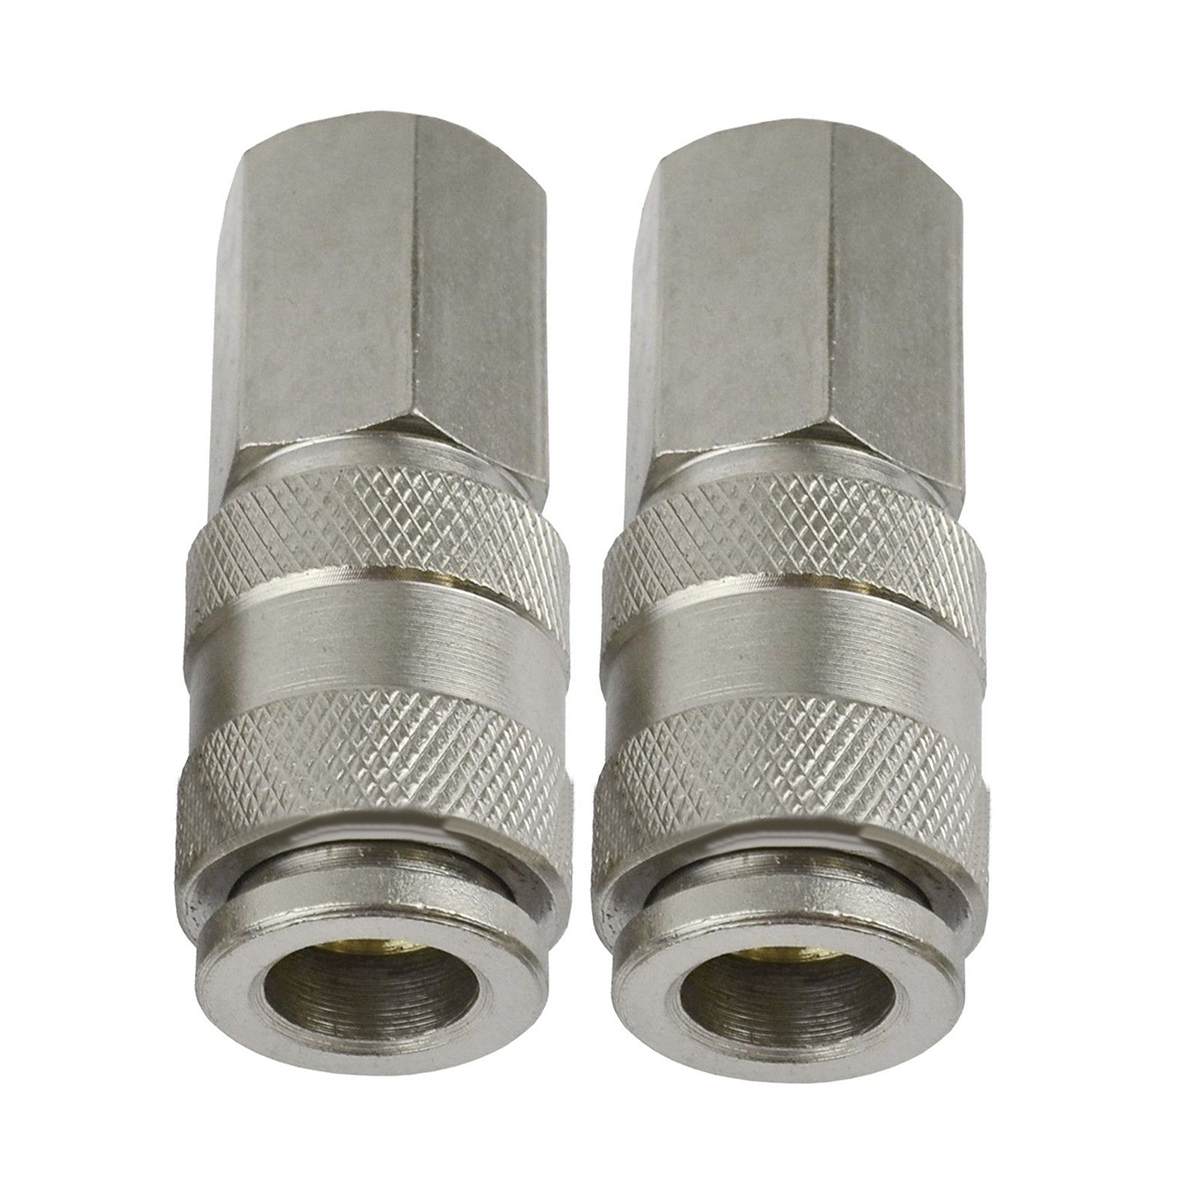 2pcs Euro Air Line Hose Connector Mayitr Female/Male Quick Release Fitting 1/4 BSP Female/Male Thread 1 1 2 male x 1 female thread reducer bushing m f pipe fitting ss 304 bsp